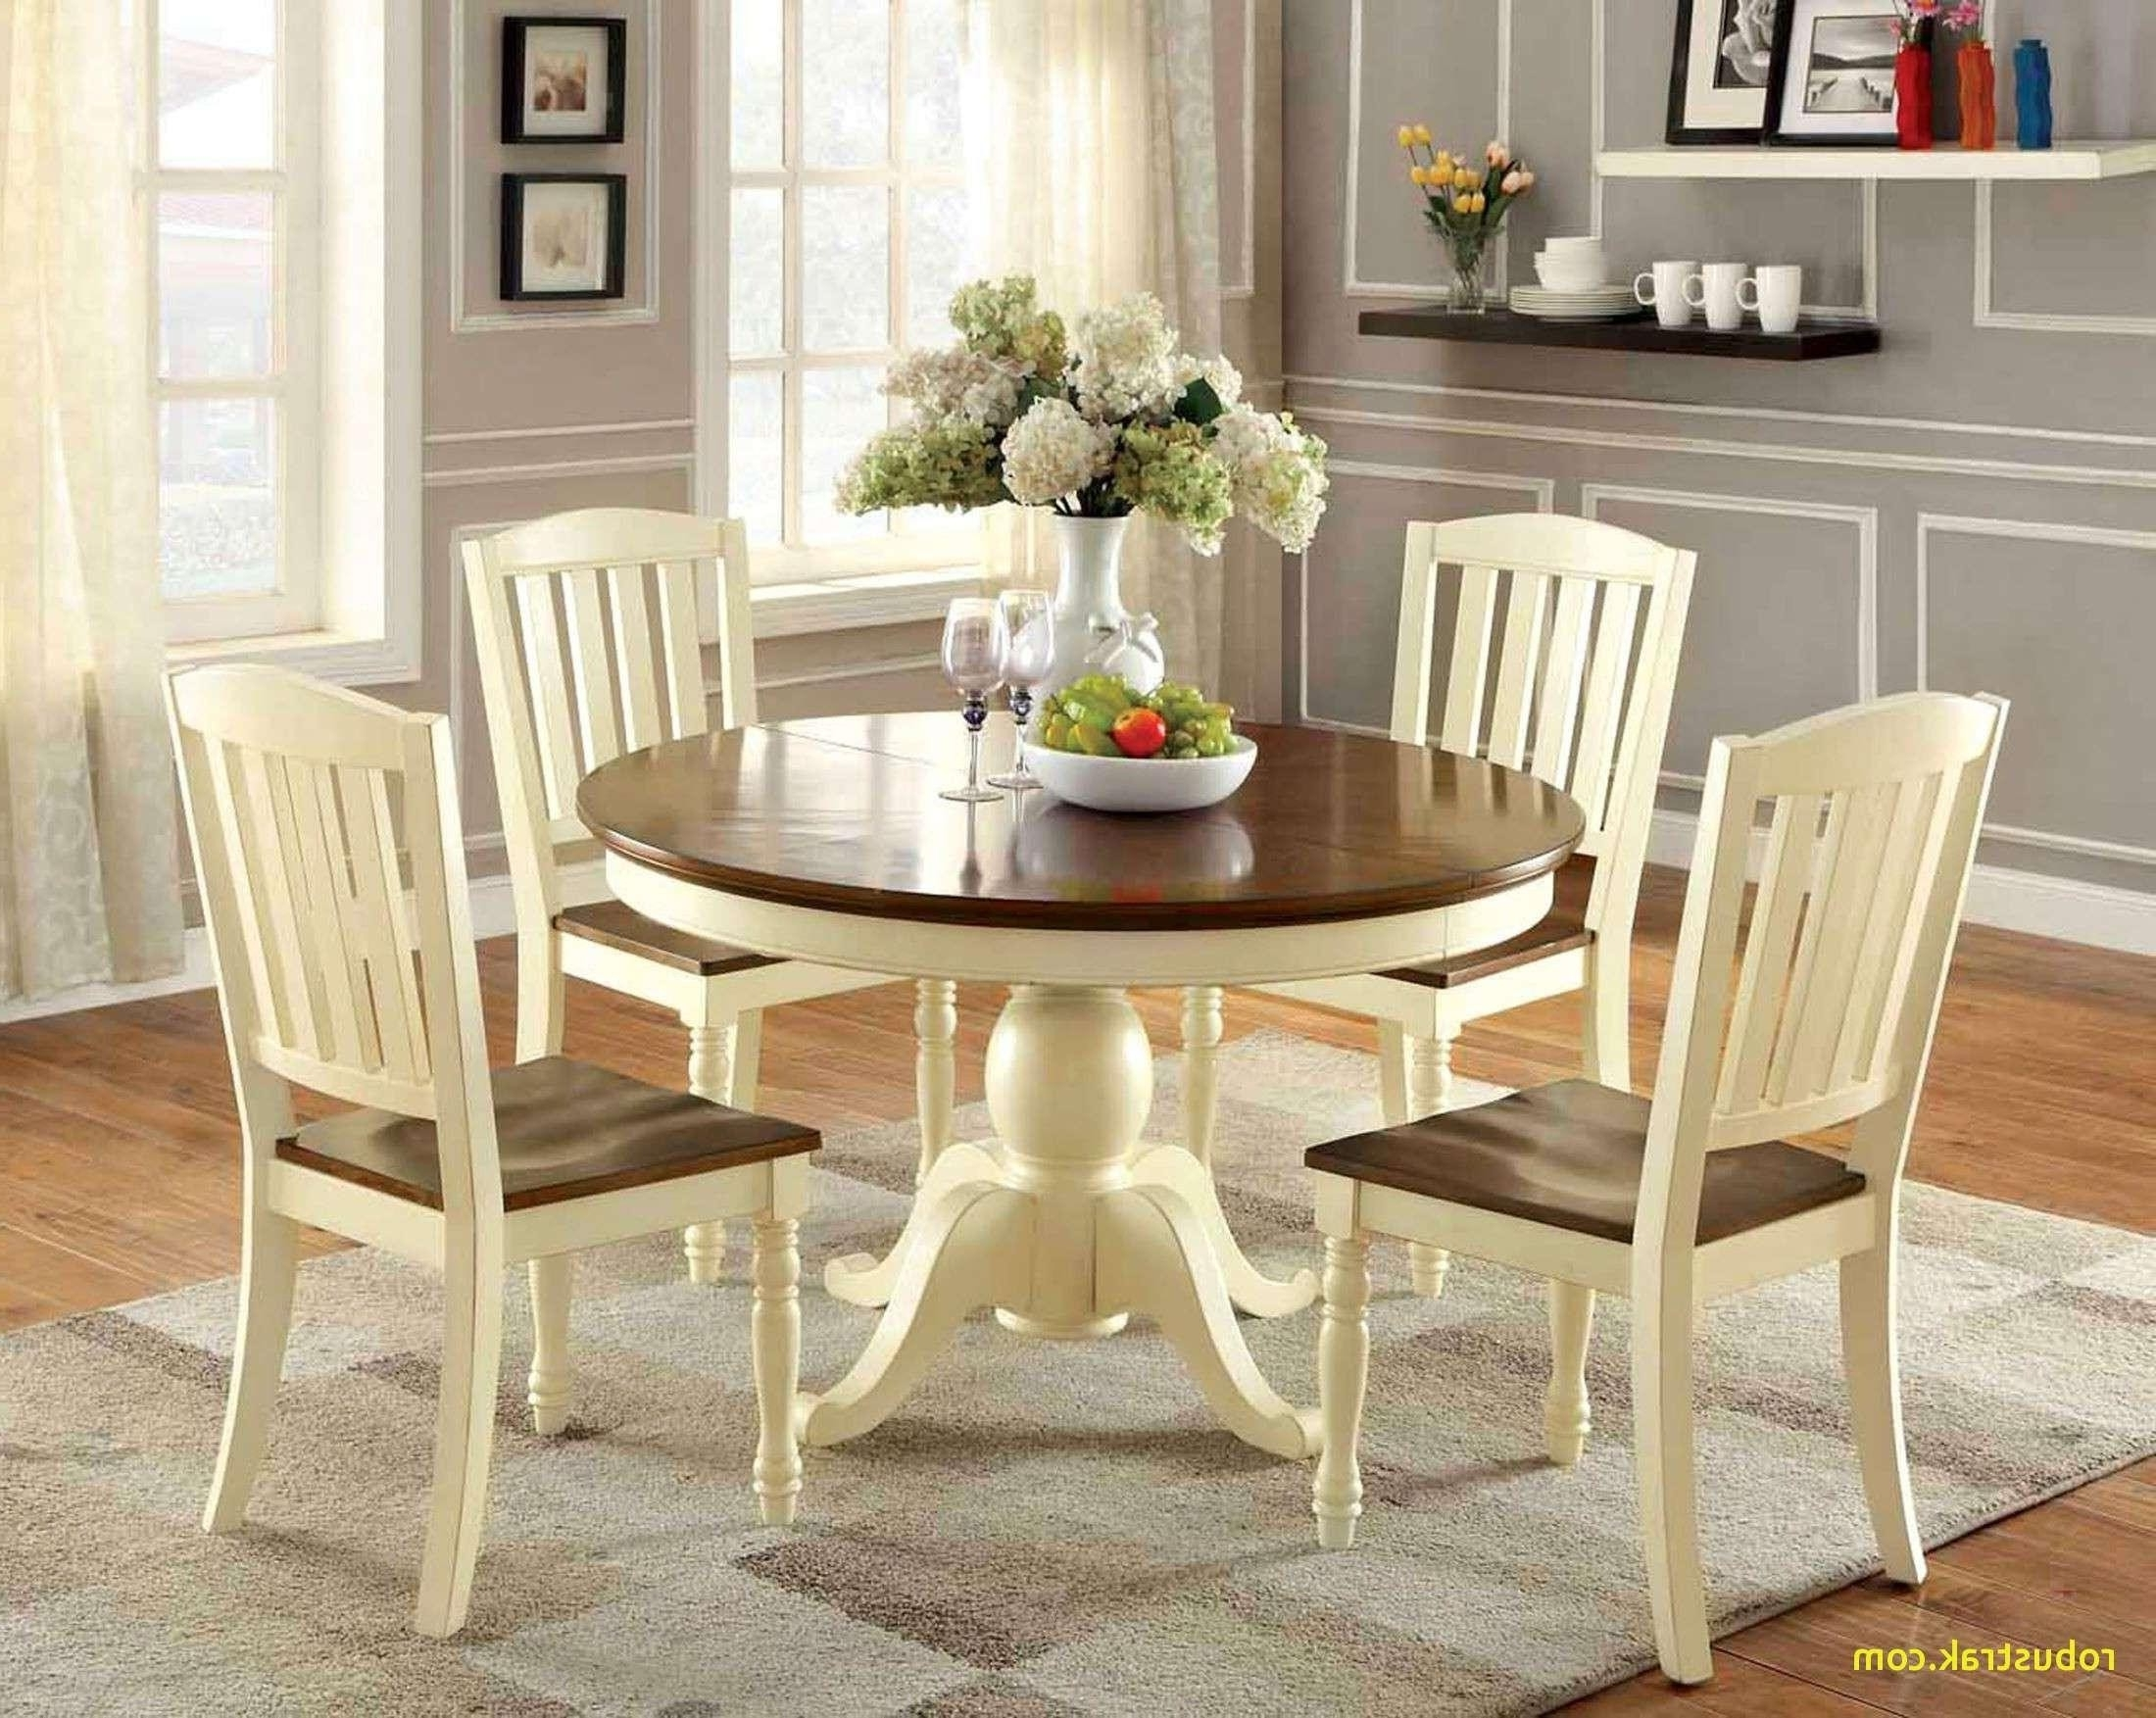 Most Popular White High Gloss Extending Dining Table Beautiful White Extending Intended For White High Gloss Oval Dining Tables (View 10 of 25)